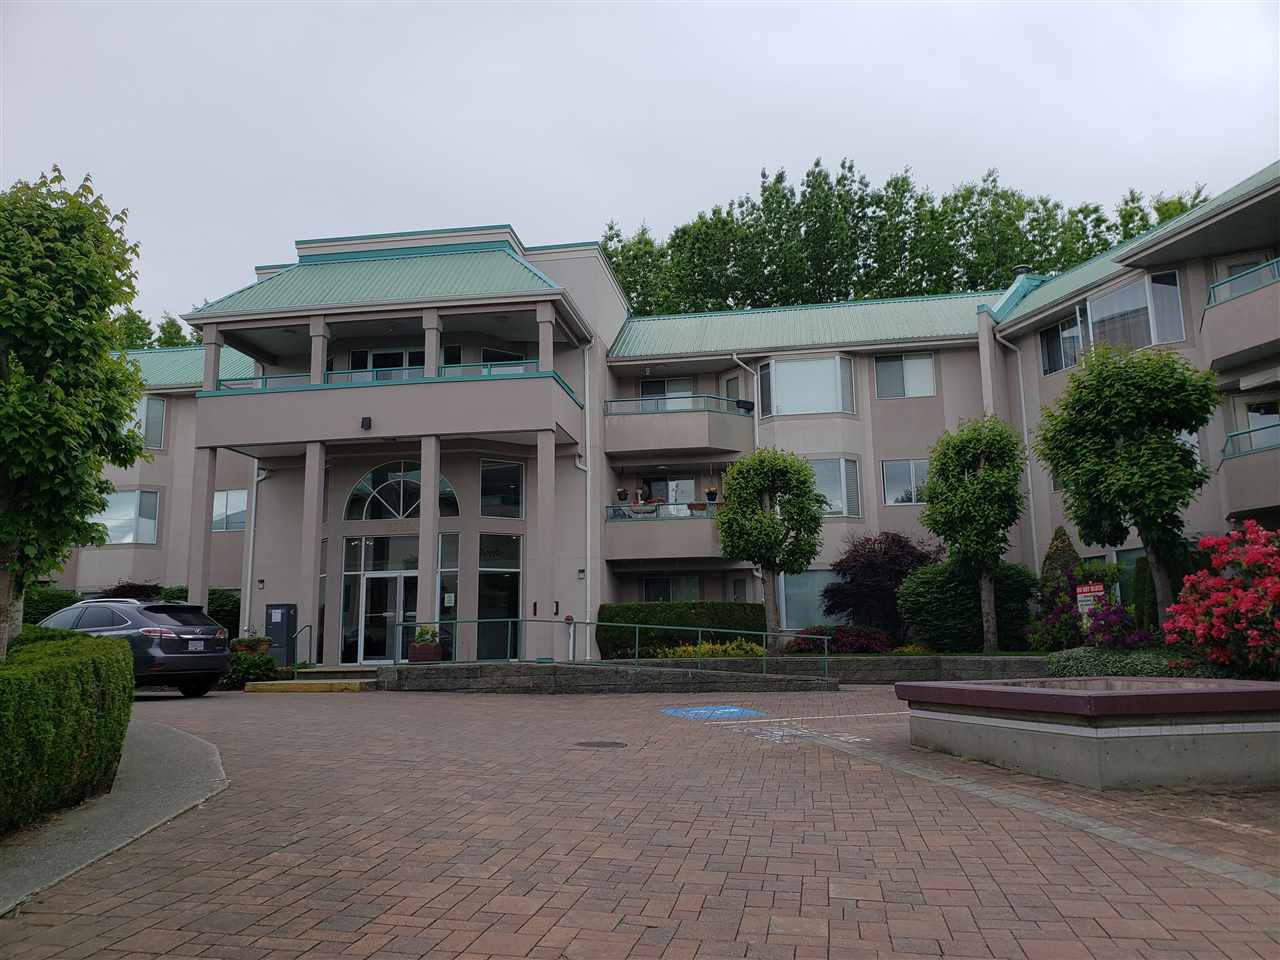 """Main Photo: 308 33165 OLD YALE Road in Abbotsford: Central Abbotsford Condo for sale in """"Sommerset Ridge"""" : MLS®# R2526606"""